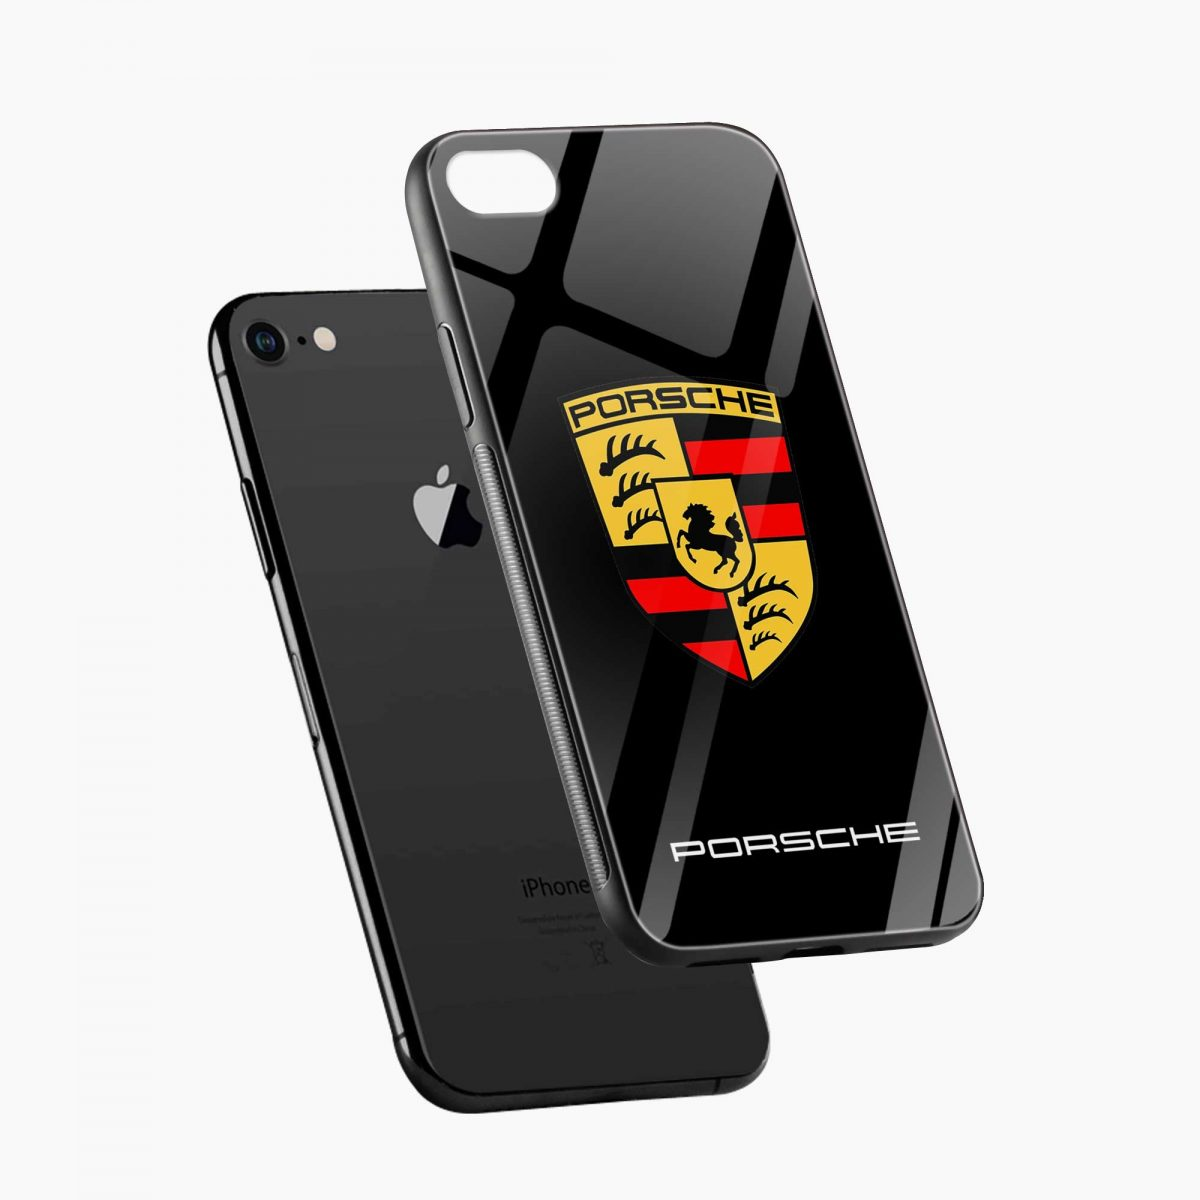 prosche diagonal view apple iphone 6 7 8 se back cover